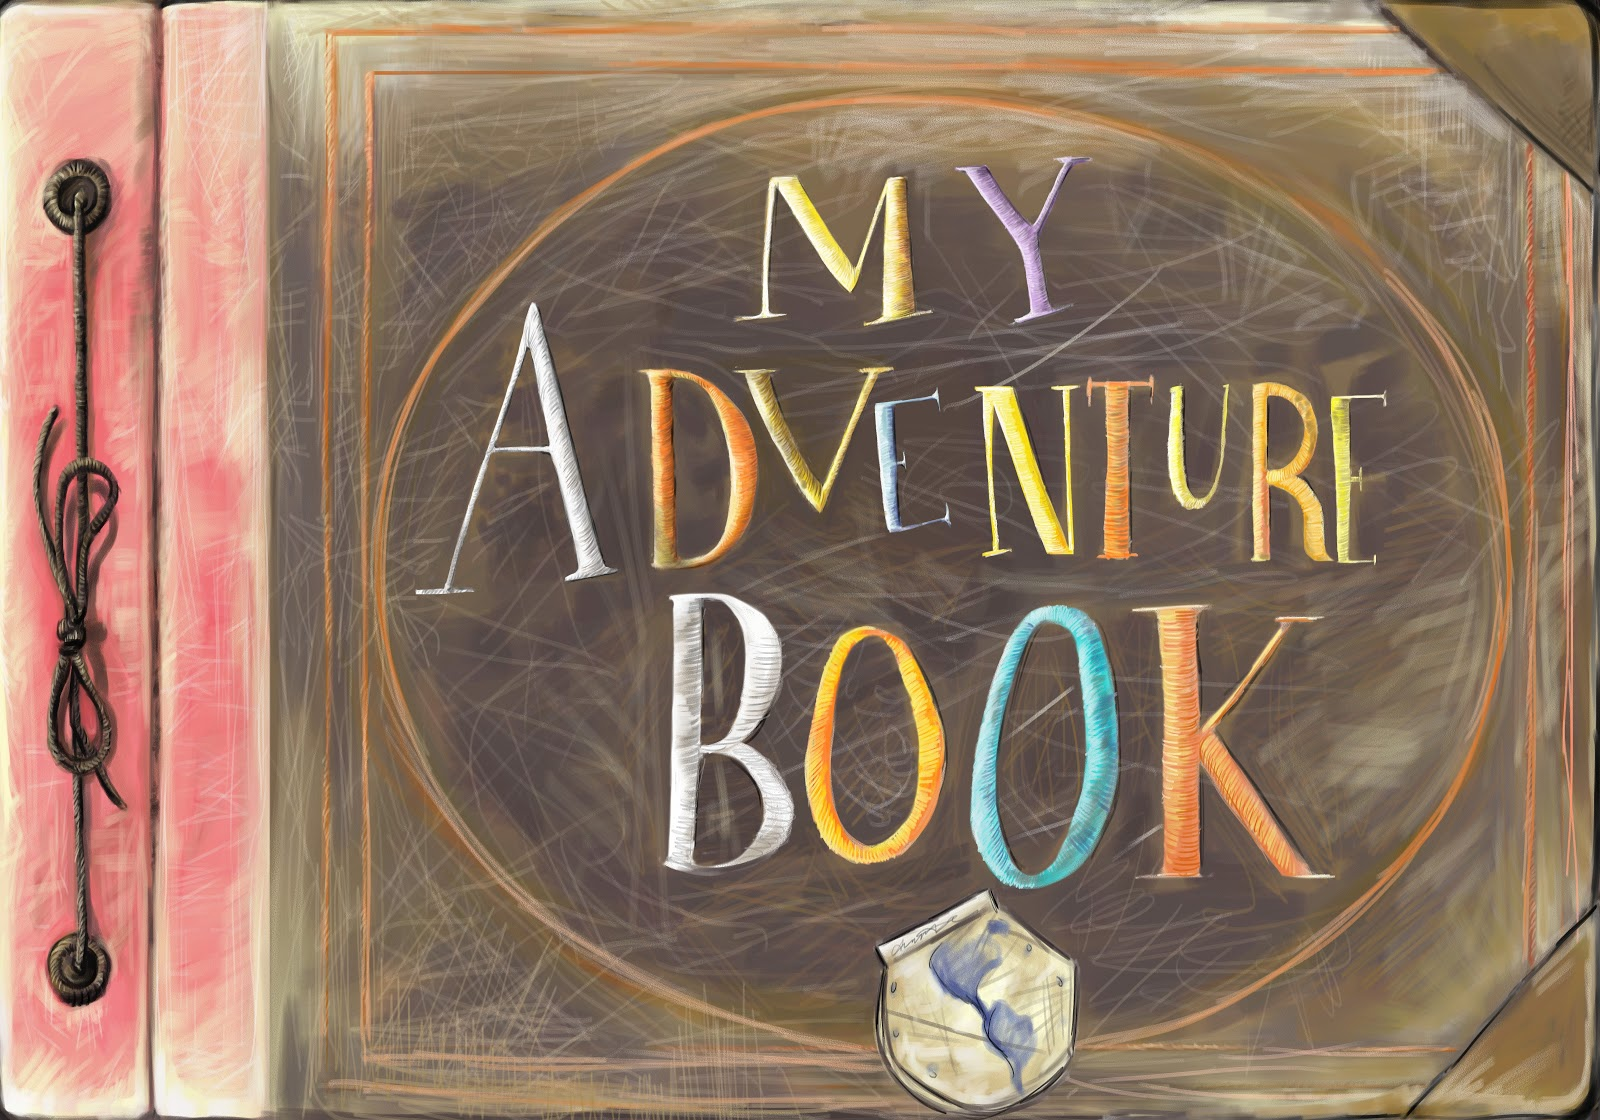 Saturday Sketch-Day: Adventure book